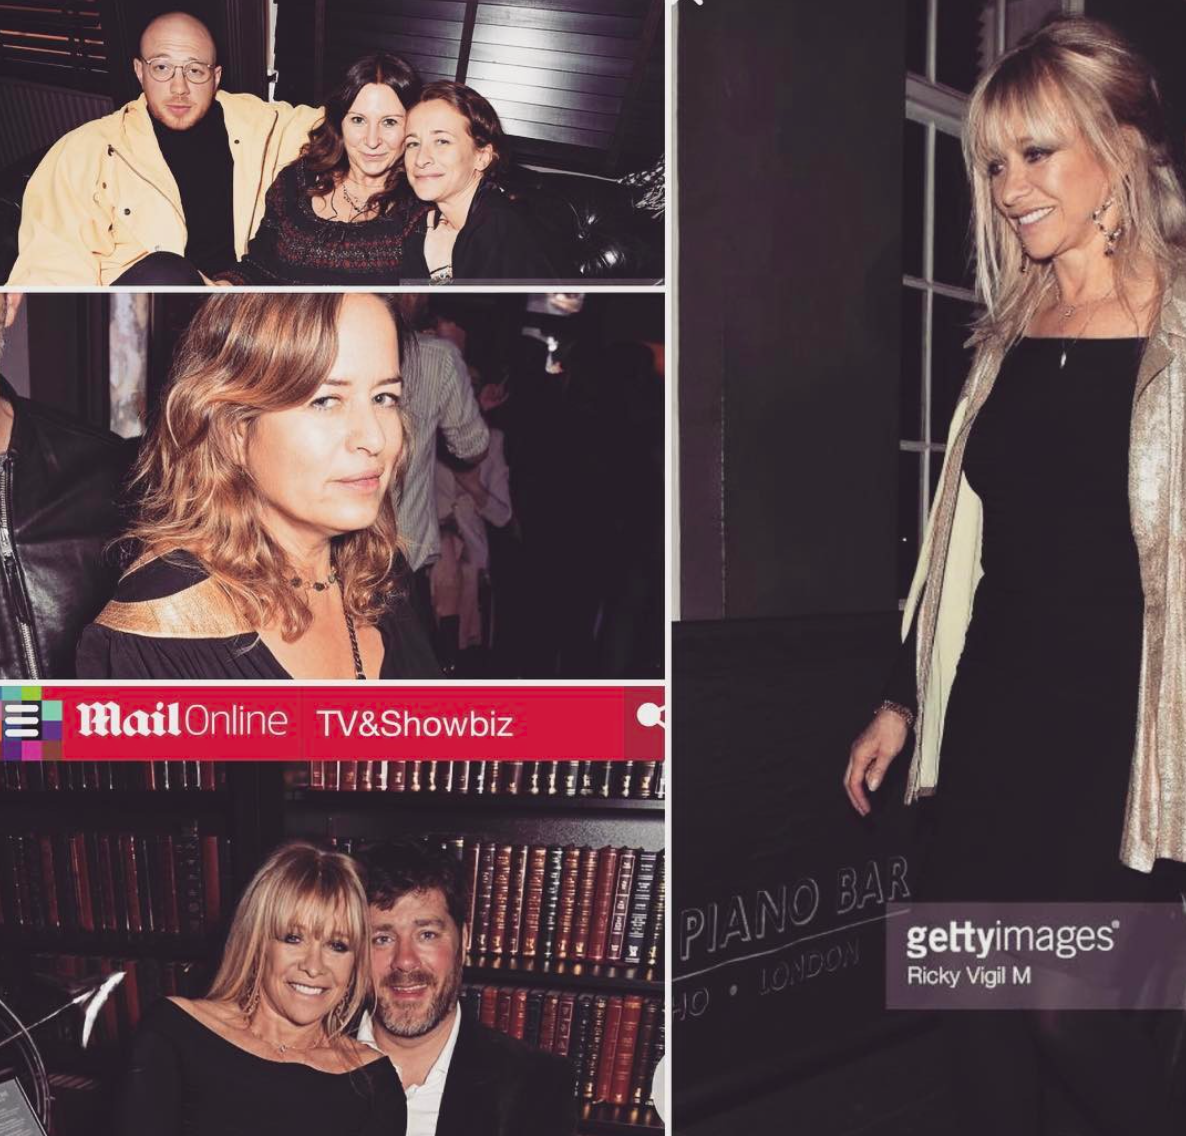 Jade Jagger and Jo Wood visit for Fran Cutler's Keep Live Music Alive in Soho Campaign 06/04/17